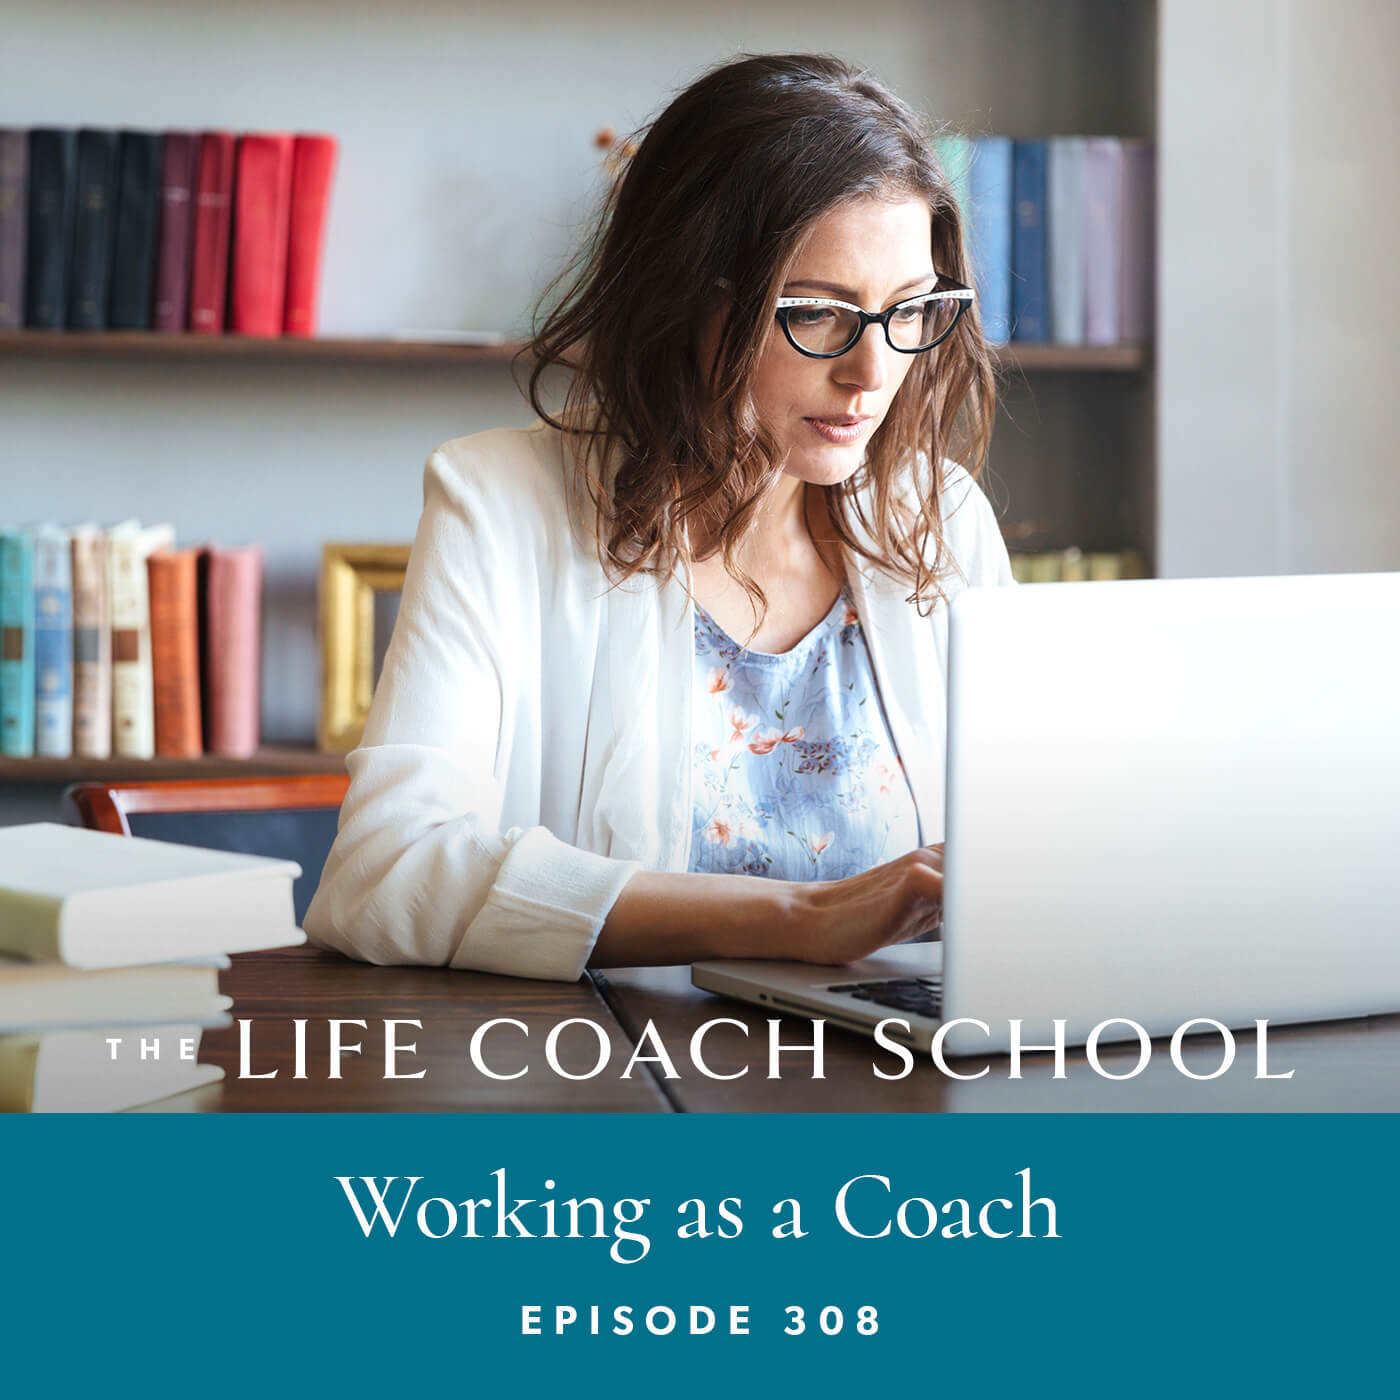 The Life Coach School Podcast with Brooke Castillo | Episode 308 | Working as a Coach